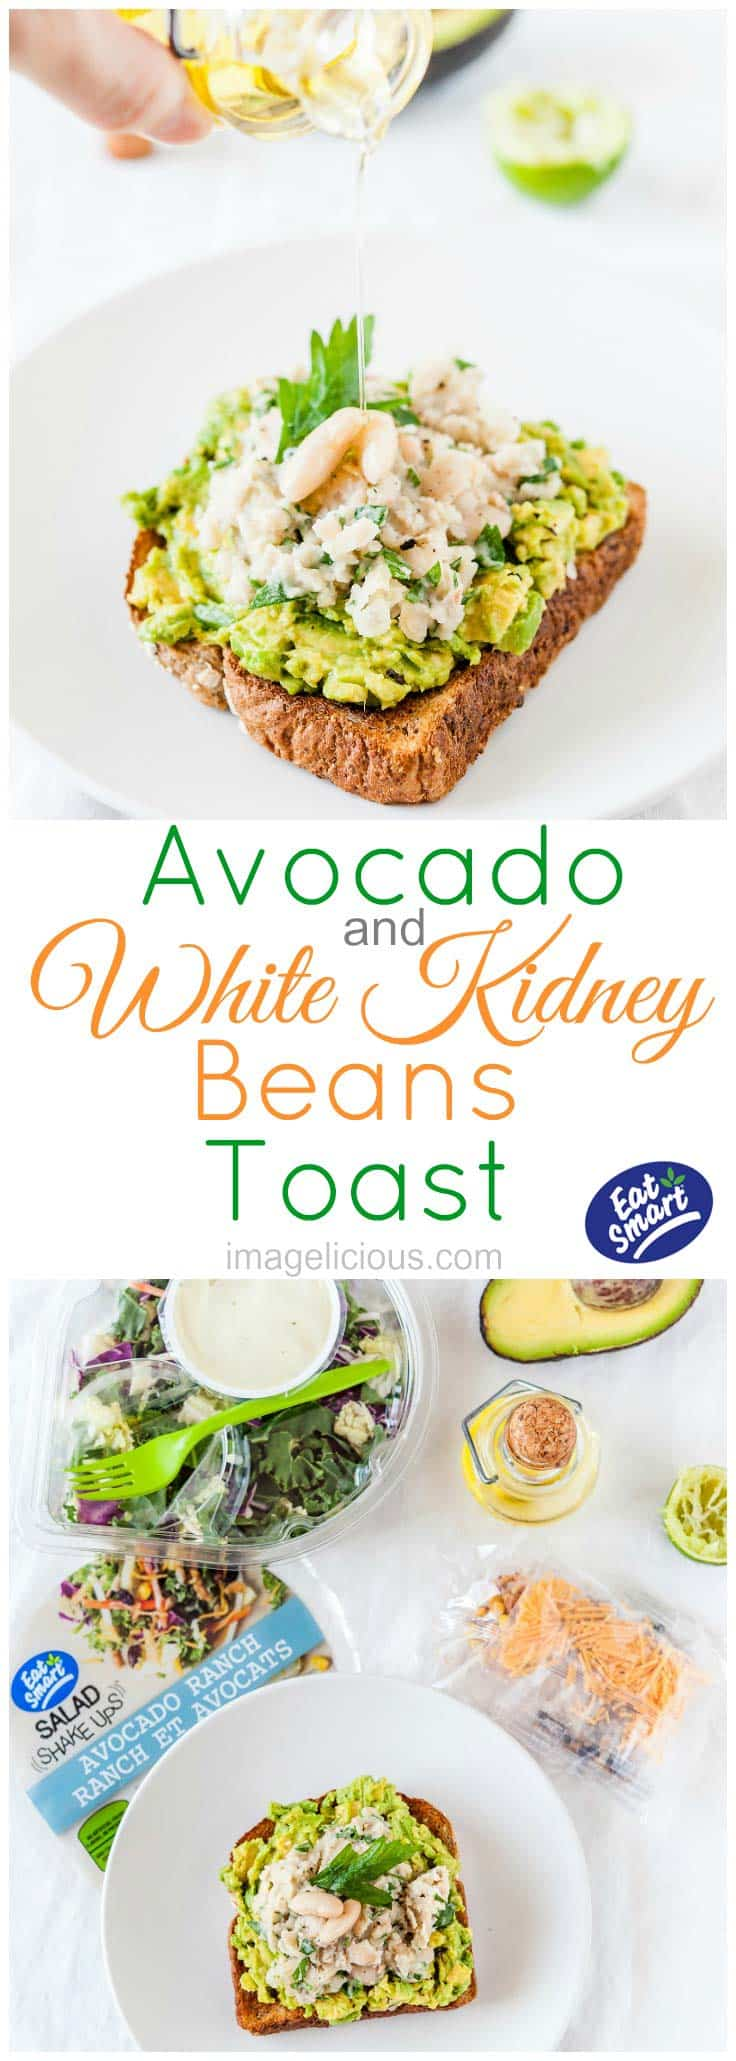 Avocado-White Kidney Beans Toast is a delicious and healthy breakfast, lunch, or even light dinner. It comes together in a matter of minutes and keeps you full for hours. Perfect for any time of the year and easy to make. Pair it with Eat Smart Salad and you have a complete meal #EatSmartEatClean #MC #ad | Imagelicious